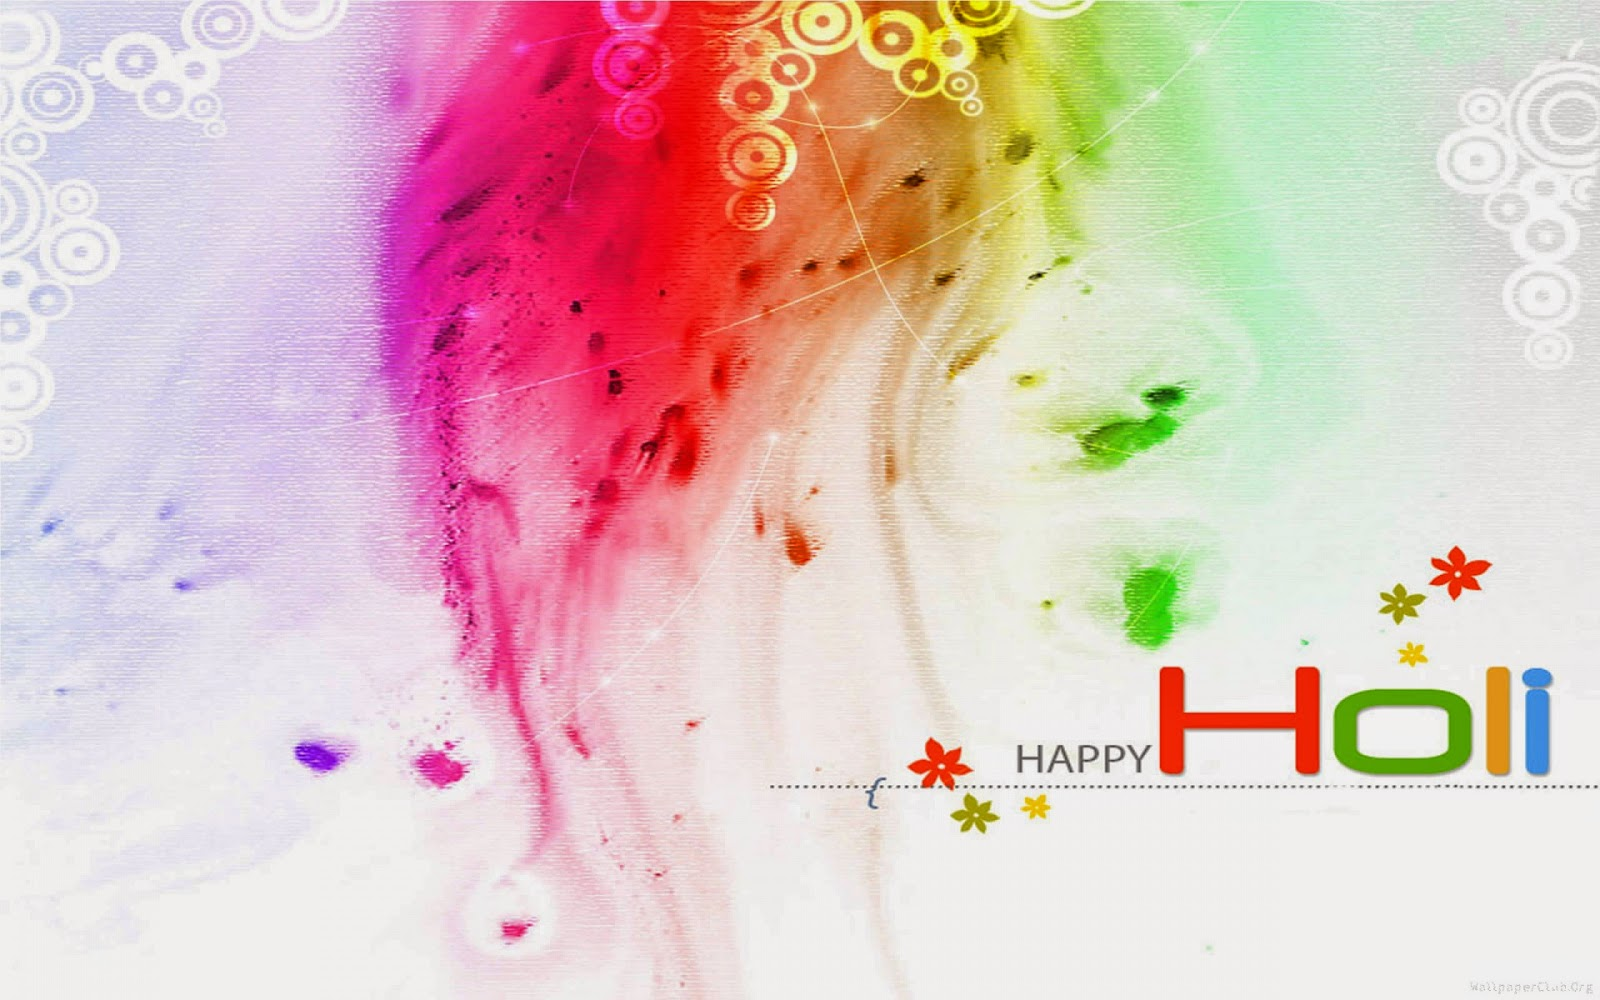 Letter writing services on holi